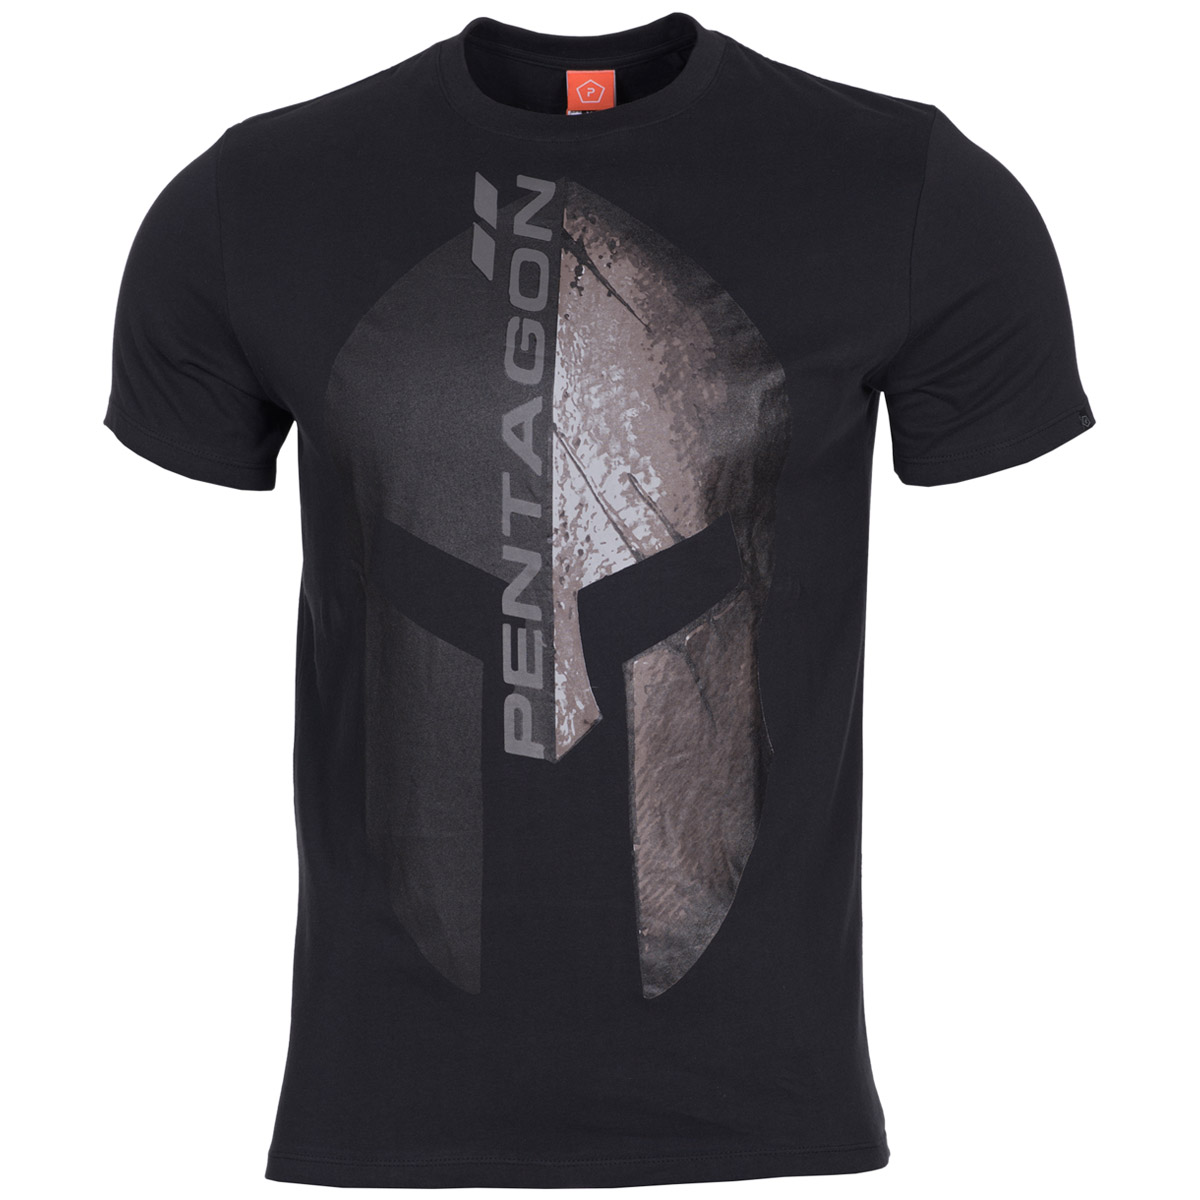 Pentagon Ageron T-Shirt Eternity Security Tactical Patrol Police Mens Top Black